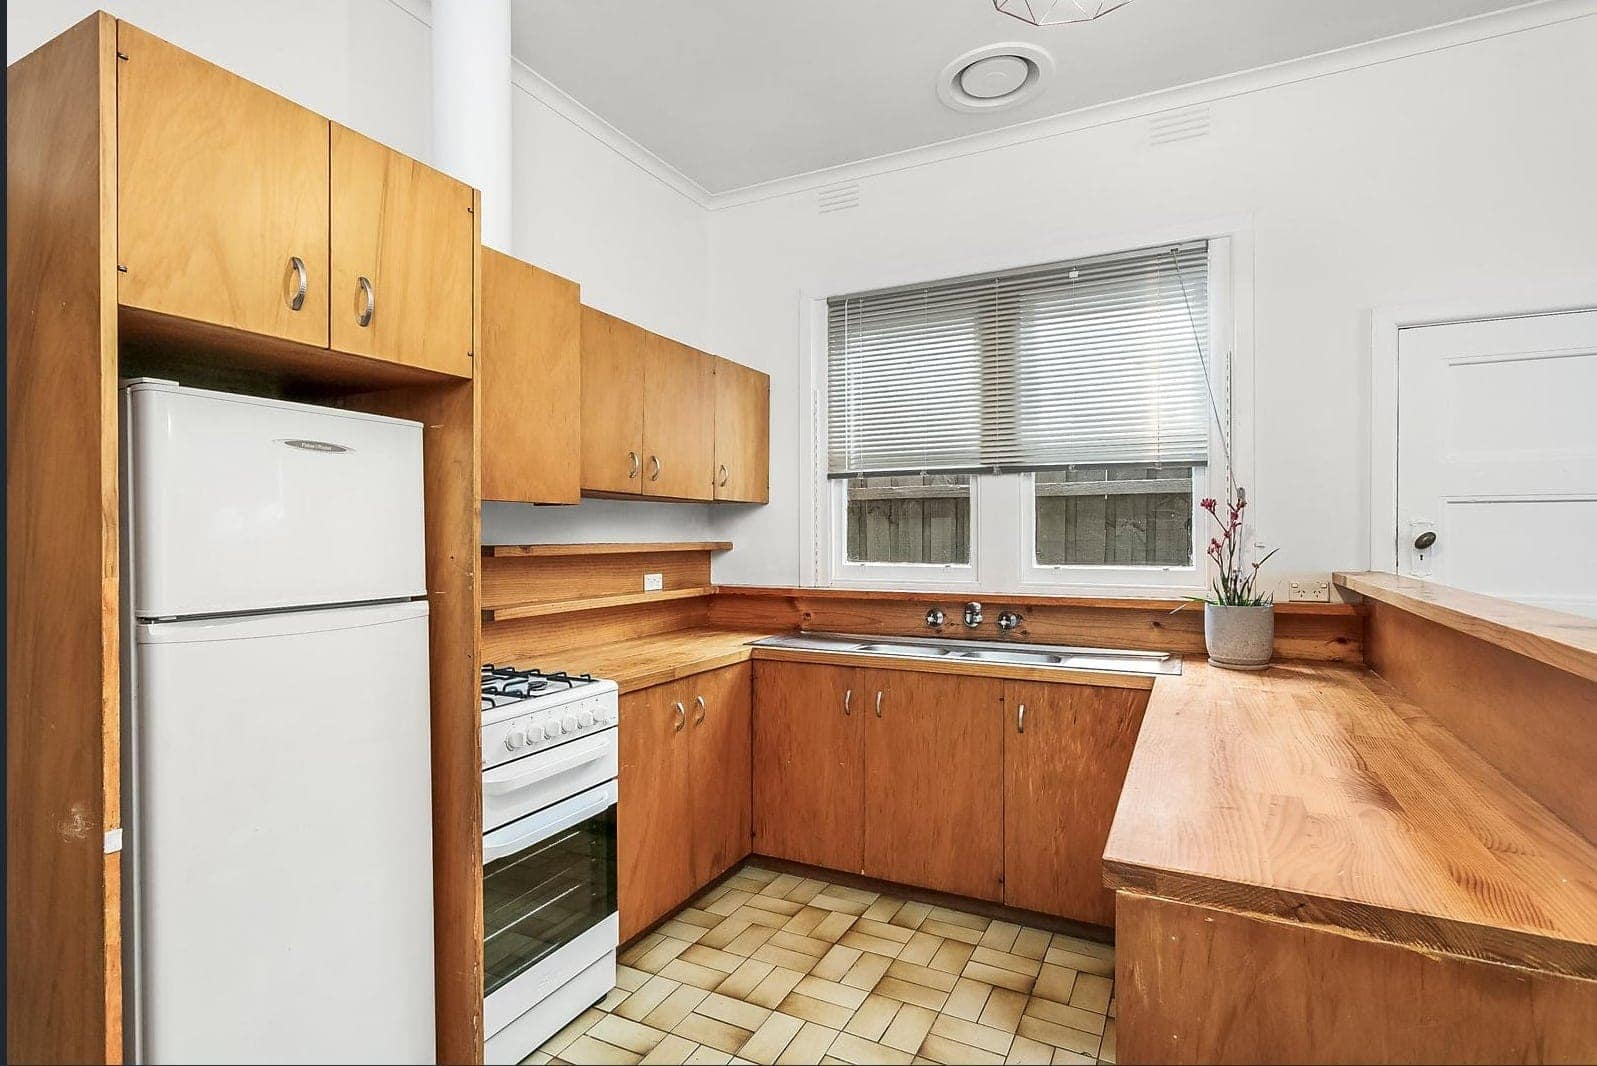 ugly looking 80s kitchen with brown cabinetry